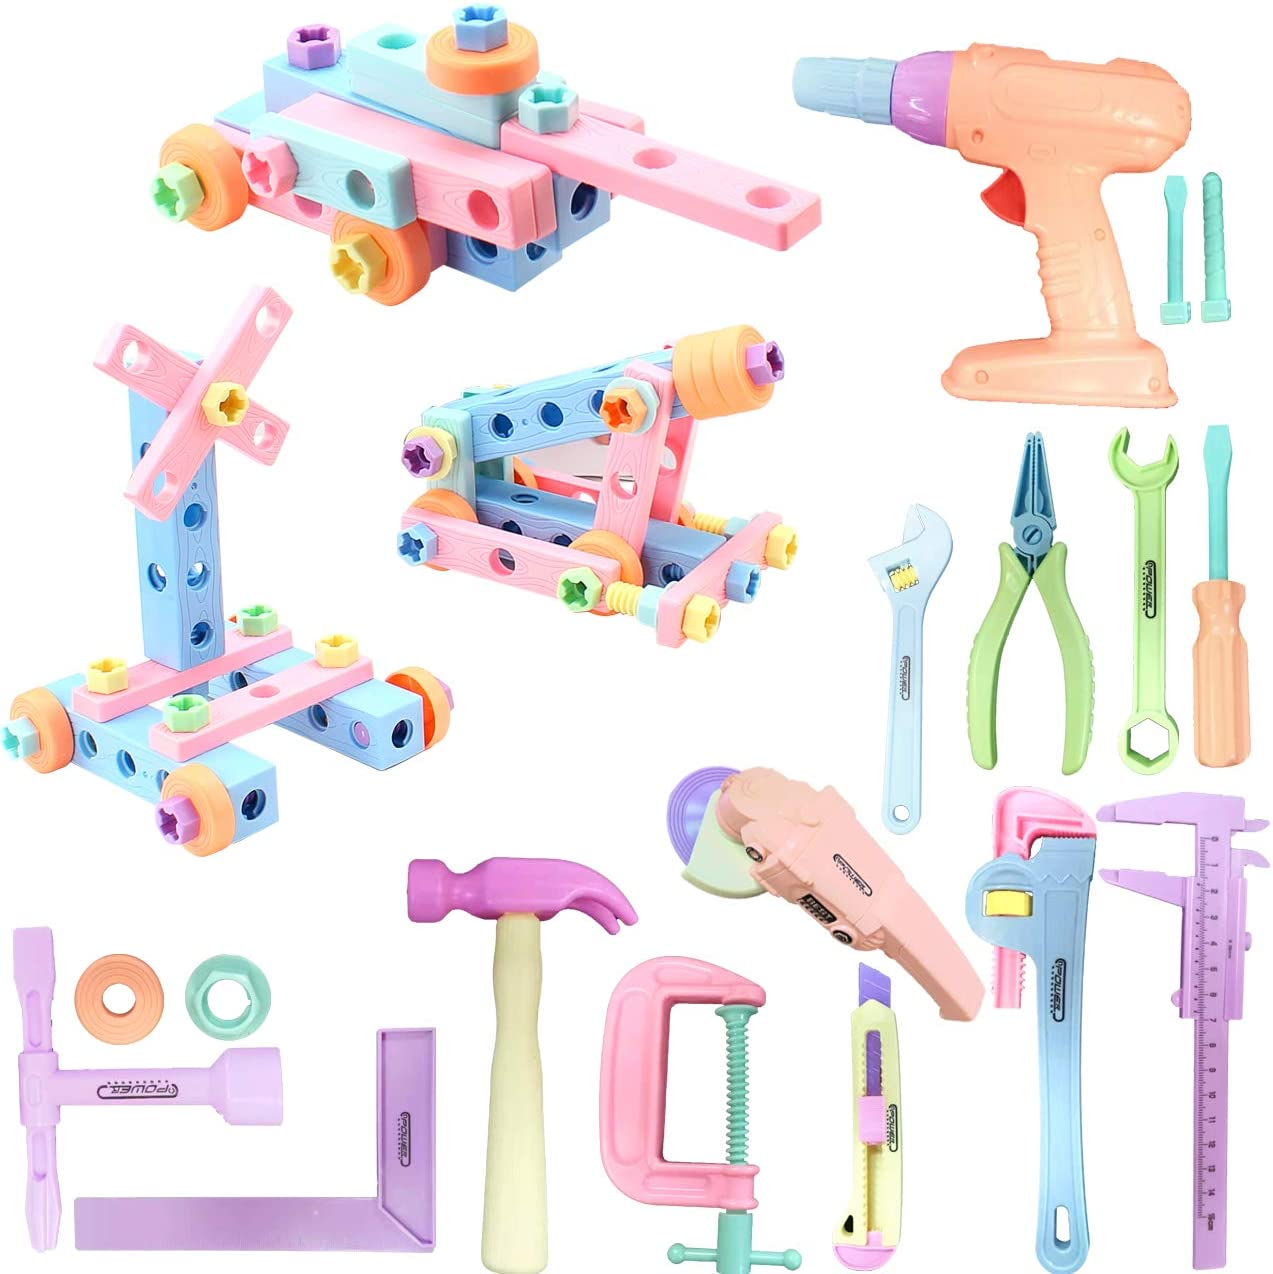 Gifts2U Kids Toy Tool Set 84pcs Realistic Kids Construction Toy Include Drill, Sander Toy, Handsaw and Screw Toy Spliced into Tank Construction Cars STEM Tool Set for Kids Boys Girls (Pink)